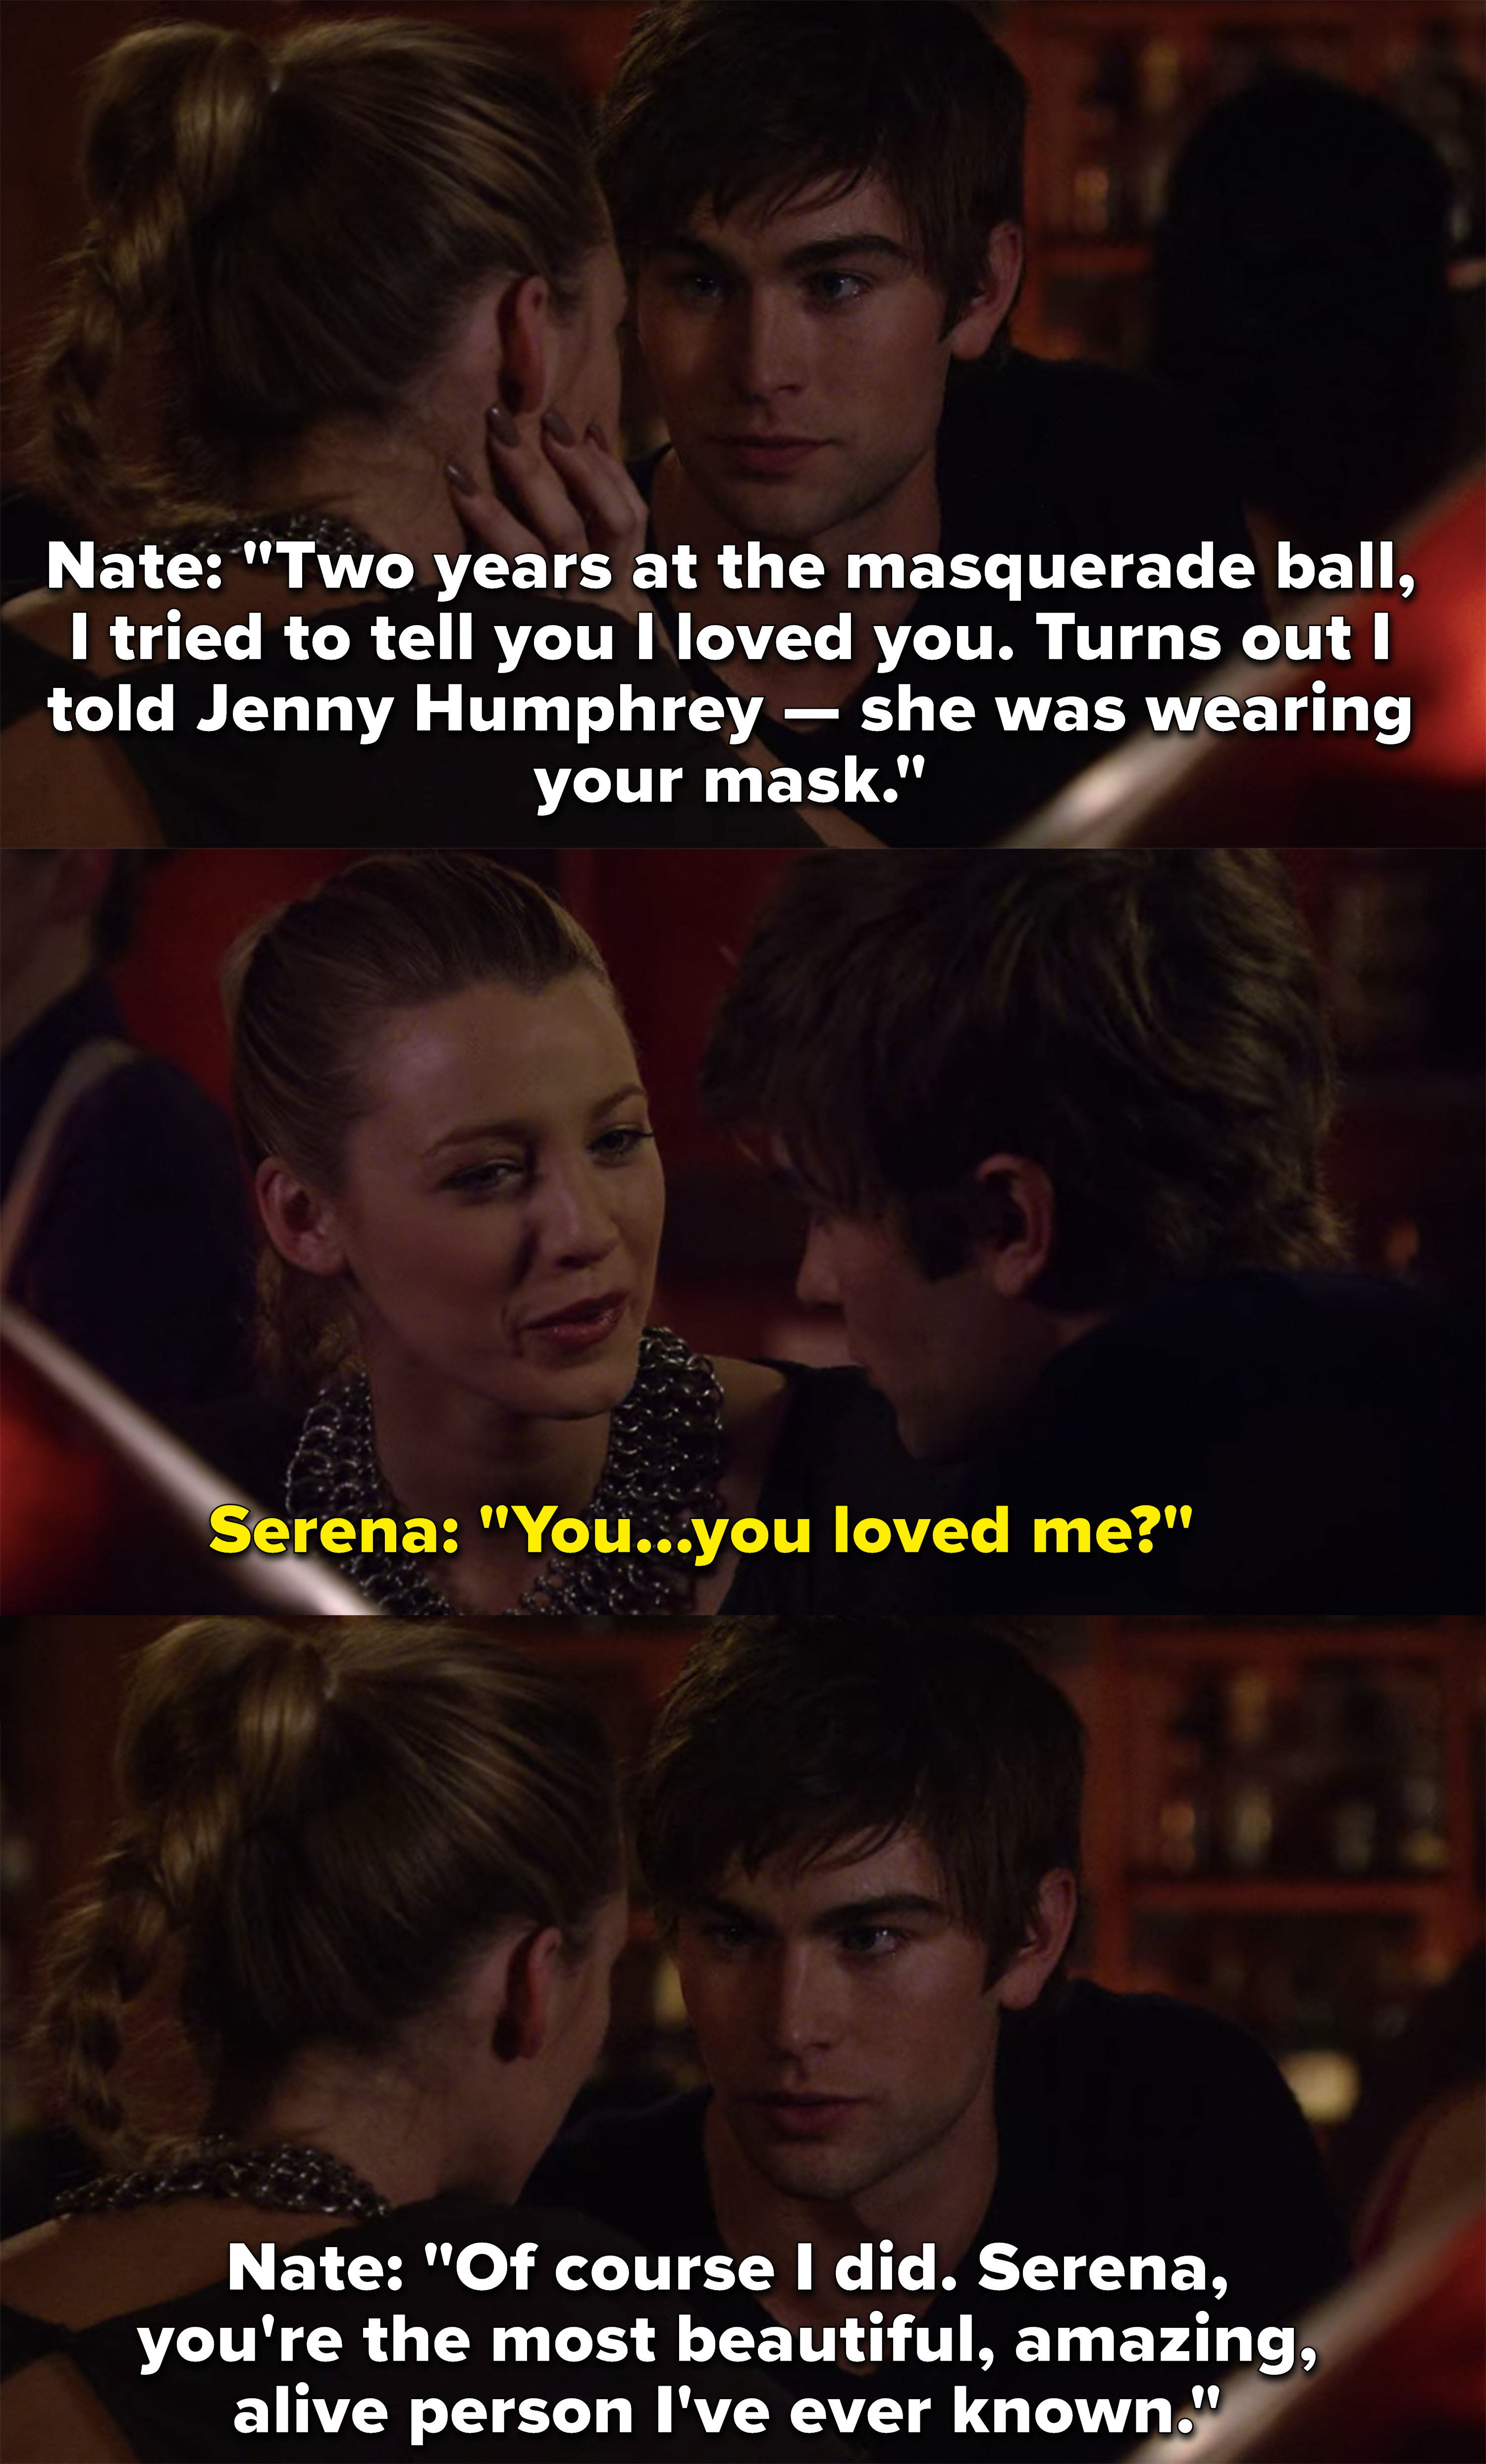 "Serena: ""You loved me?"" Nate: ""Of course I did, Serena, you're most beautiful amazing alive person I've ever known"""